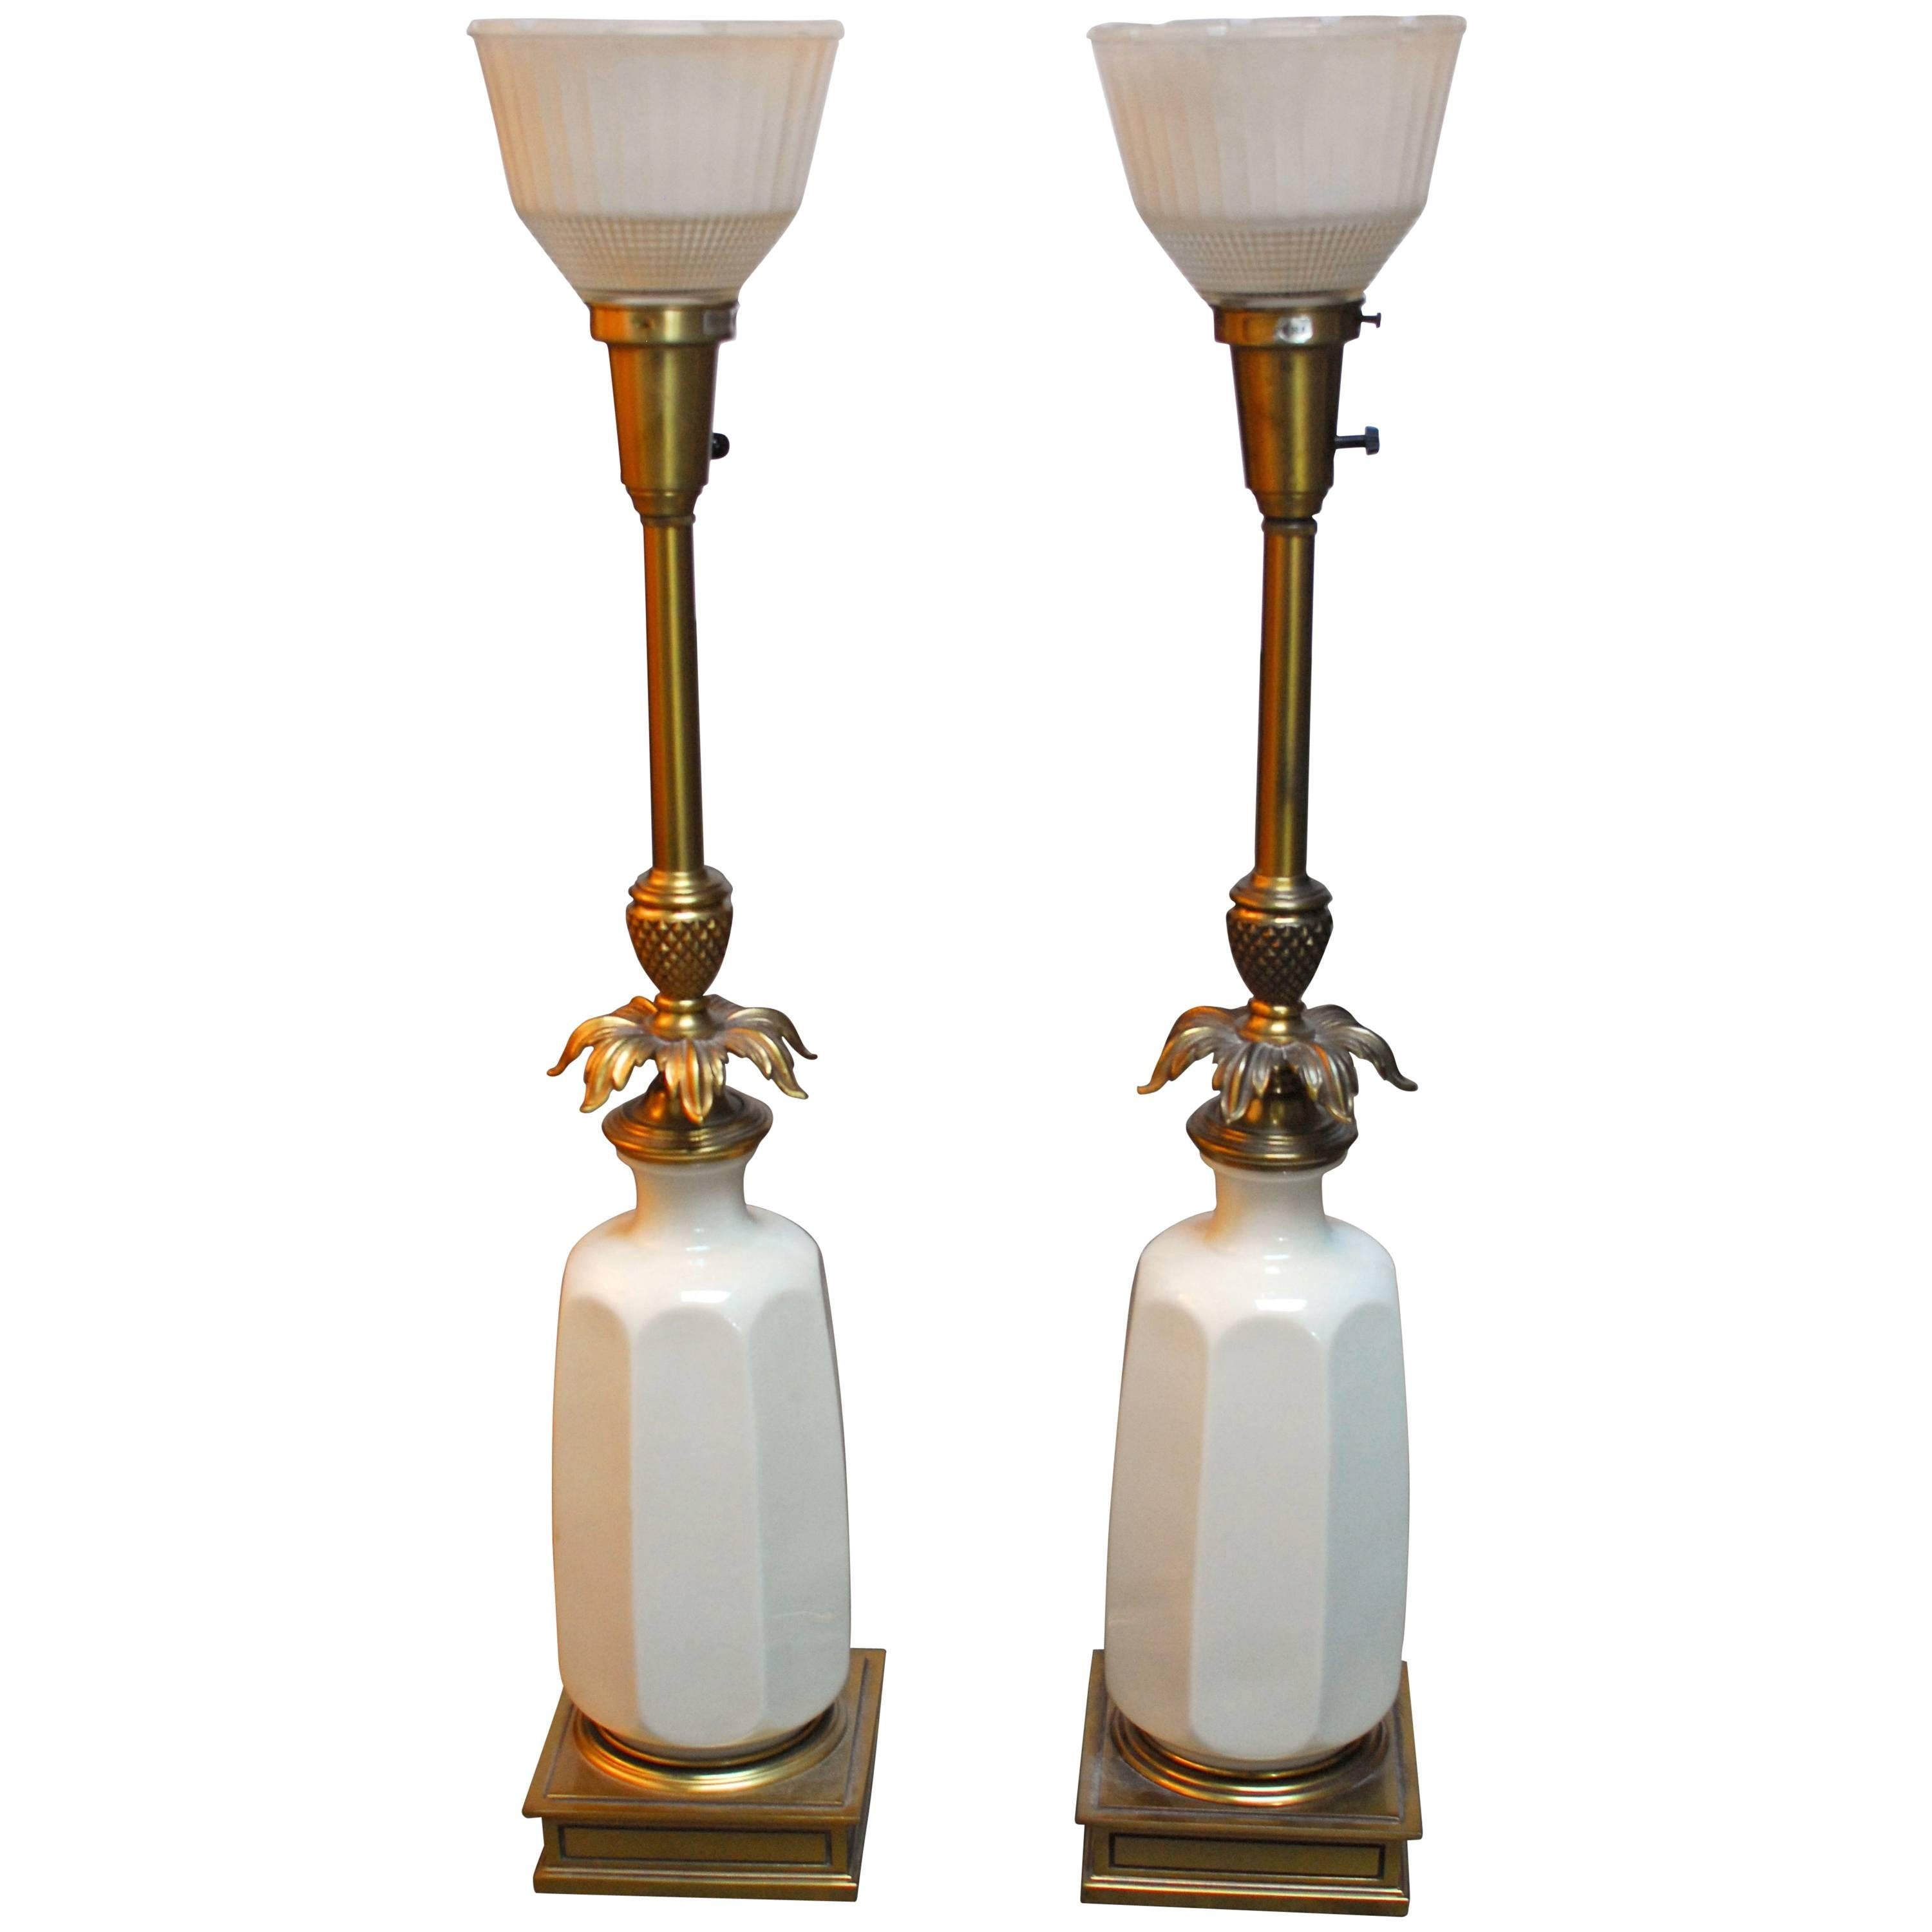 Hollywood regency lenox porcelain and brass stiffel lamps for sale at 1stdibs